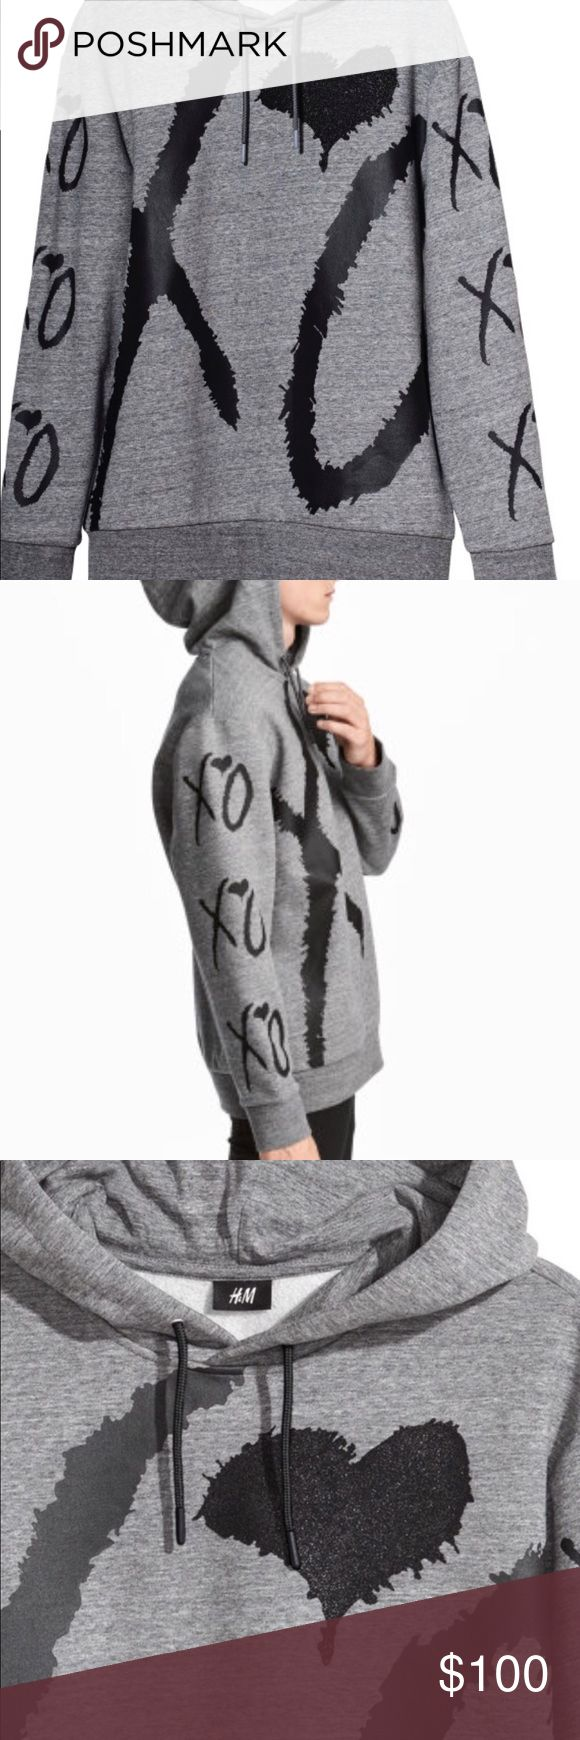 The Weeknd H&M XO grey gray hoodie medium SOLD OUT H&M The Weeknd x collection XO grey gray hoodie sweatshirt medium M SOLD OUT  NEW WITH TAGS Relaxed fit H&M Shirts Sweatshirts & Hoodies